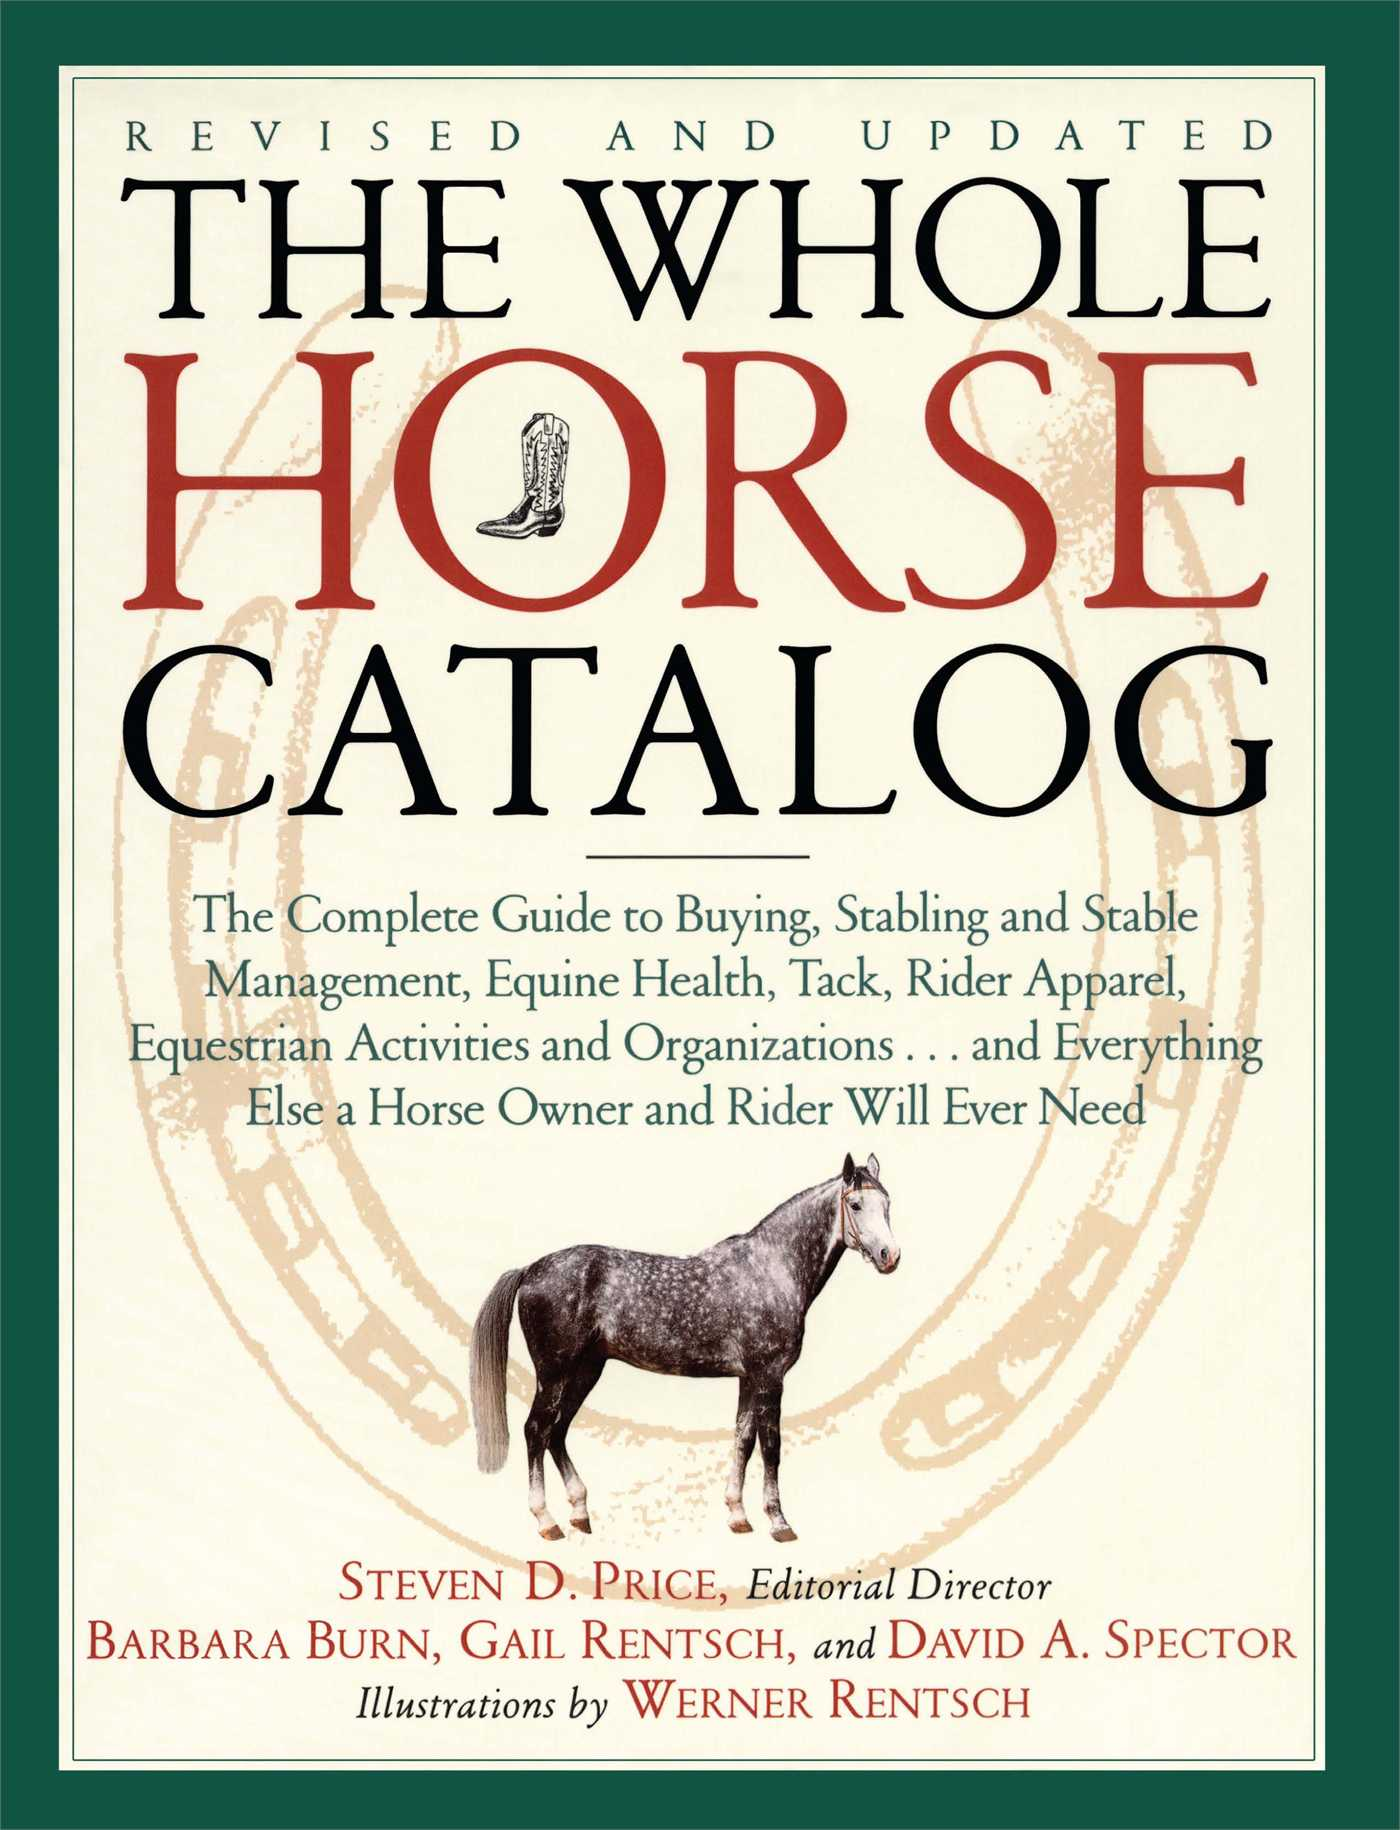 Whole-horse-catalog-9780684839950_hr